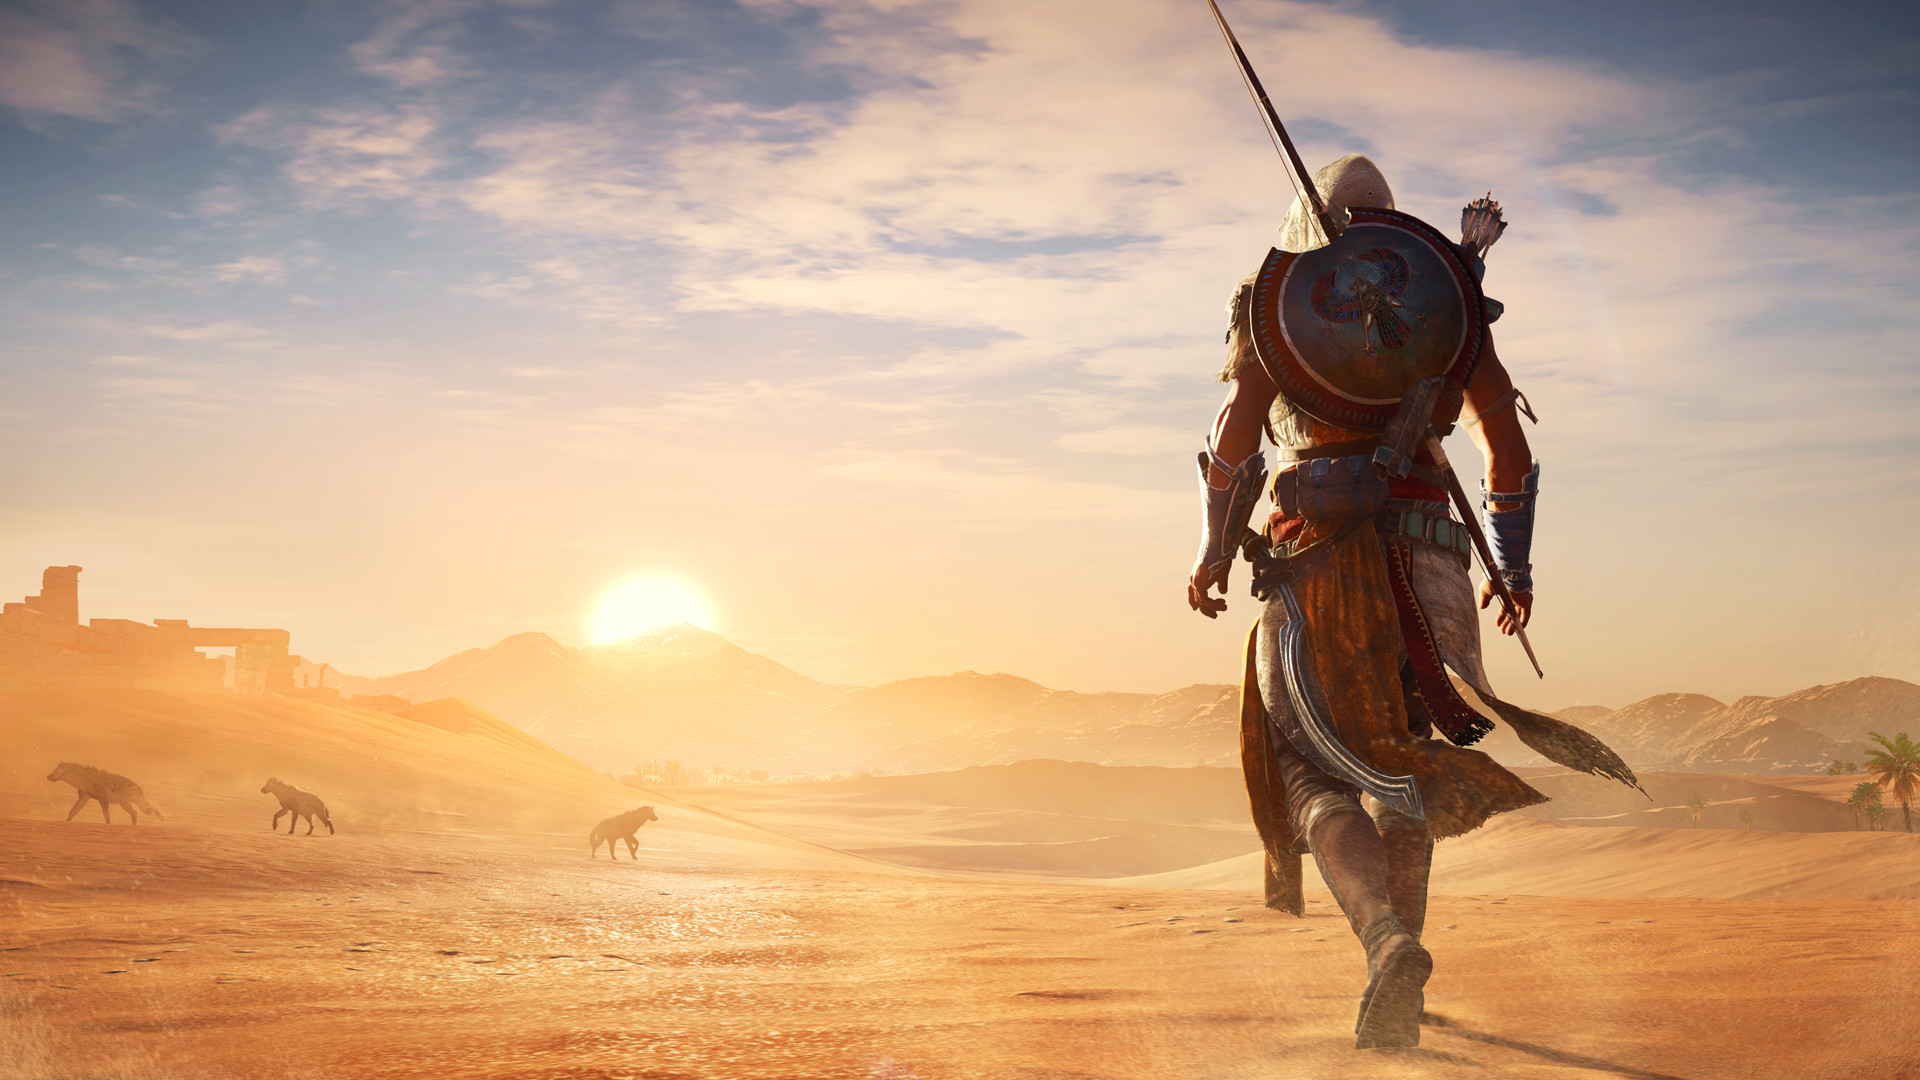 I'm currently mixed on the gameplay I've seen and played thus far for Ubisoft's <em>Assassin's Creed Origins</em>. But I'm in no way mad or upset about the gorgeous art direction and characters in the game. The hateful Steam forum posters who tried to attach a racist meme campaign to this game should take a good, hard look at themselves.